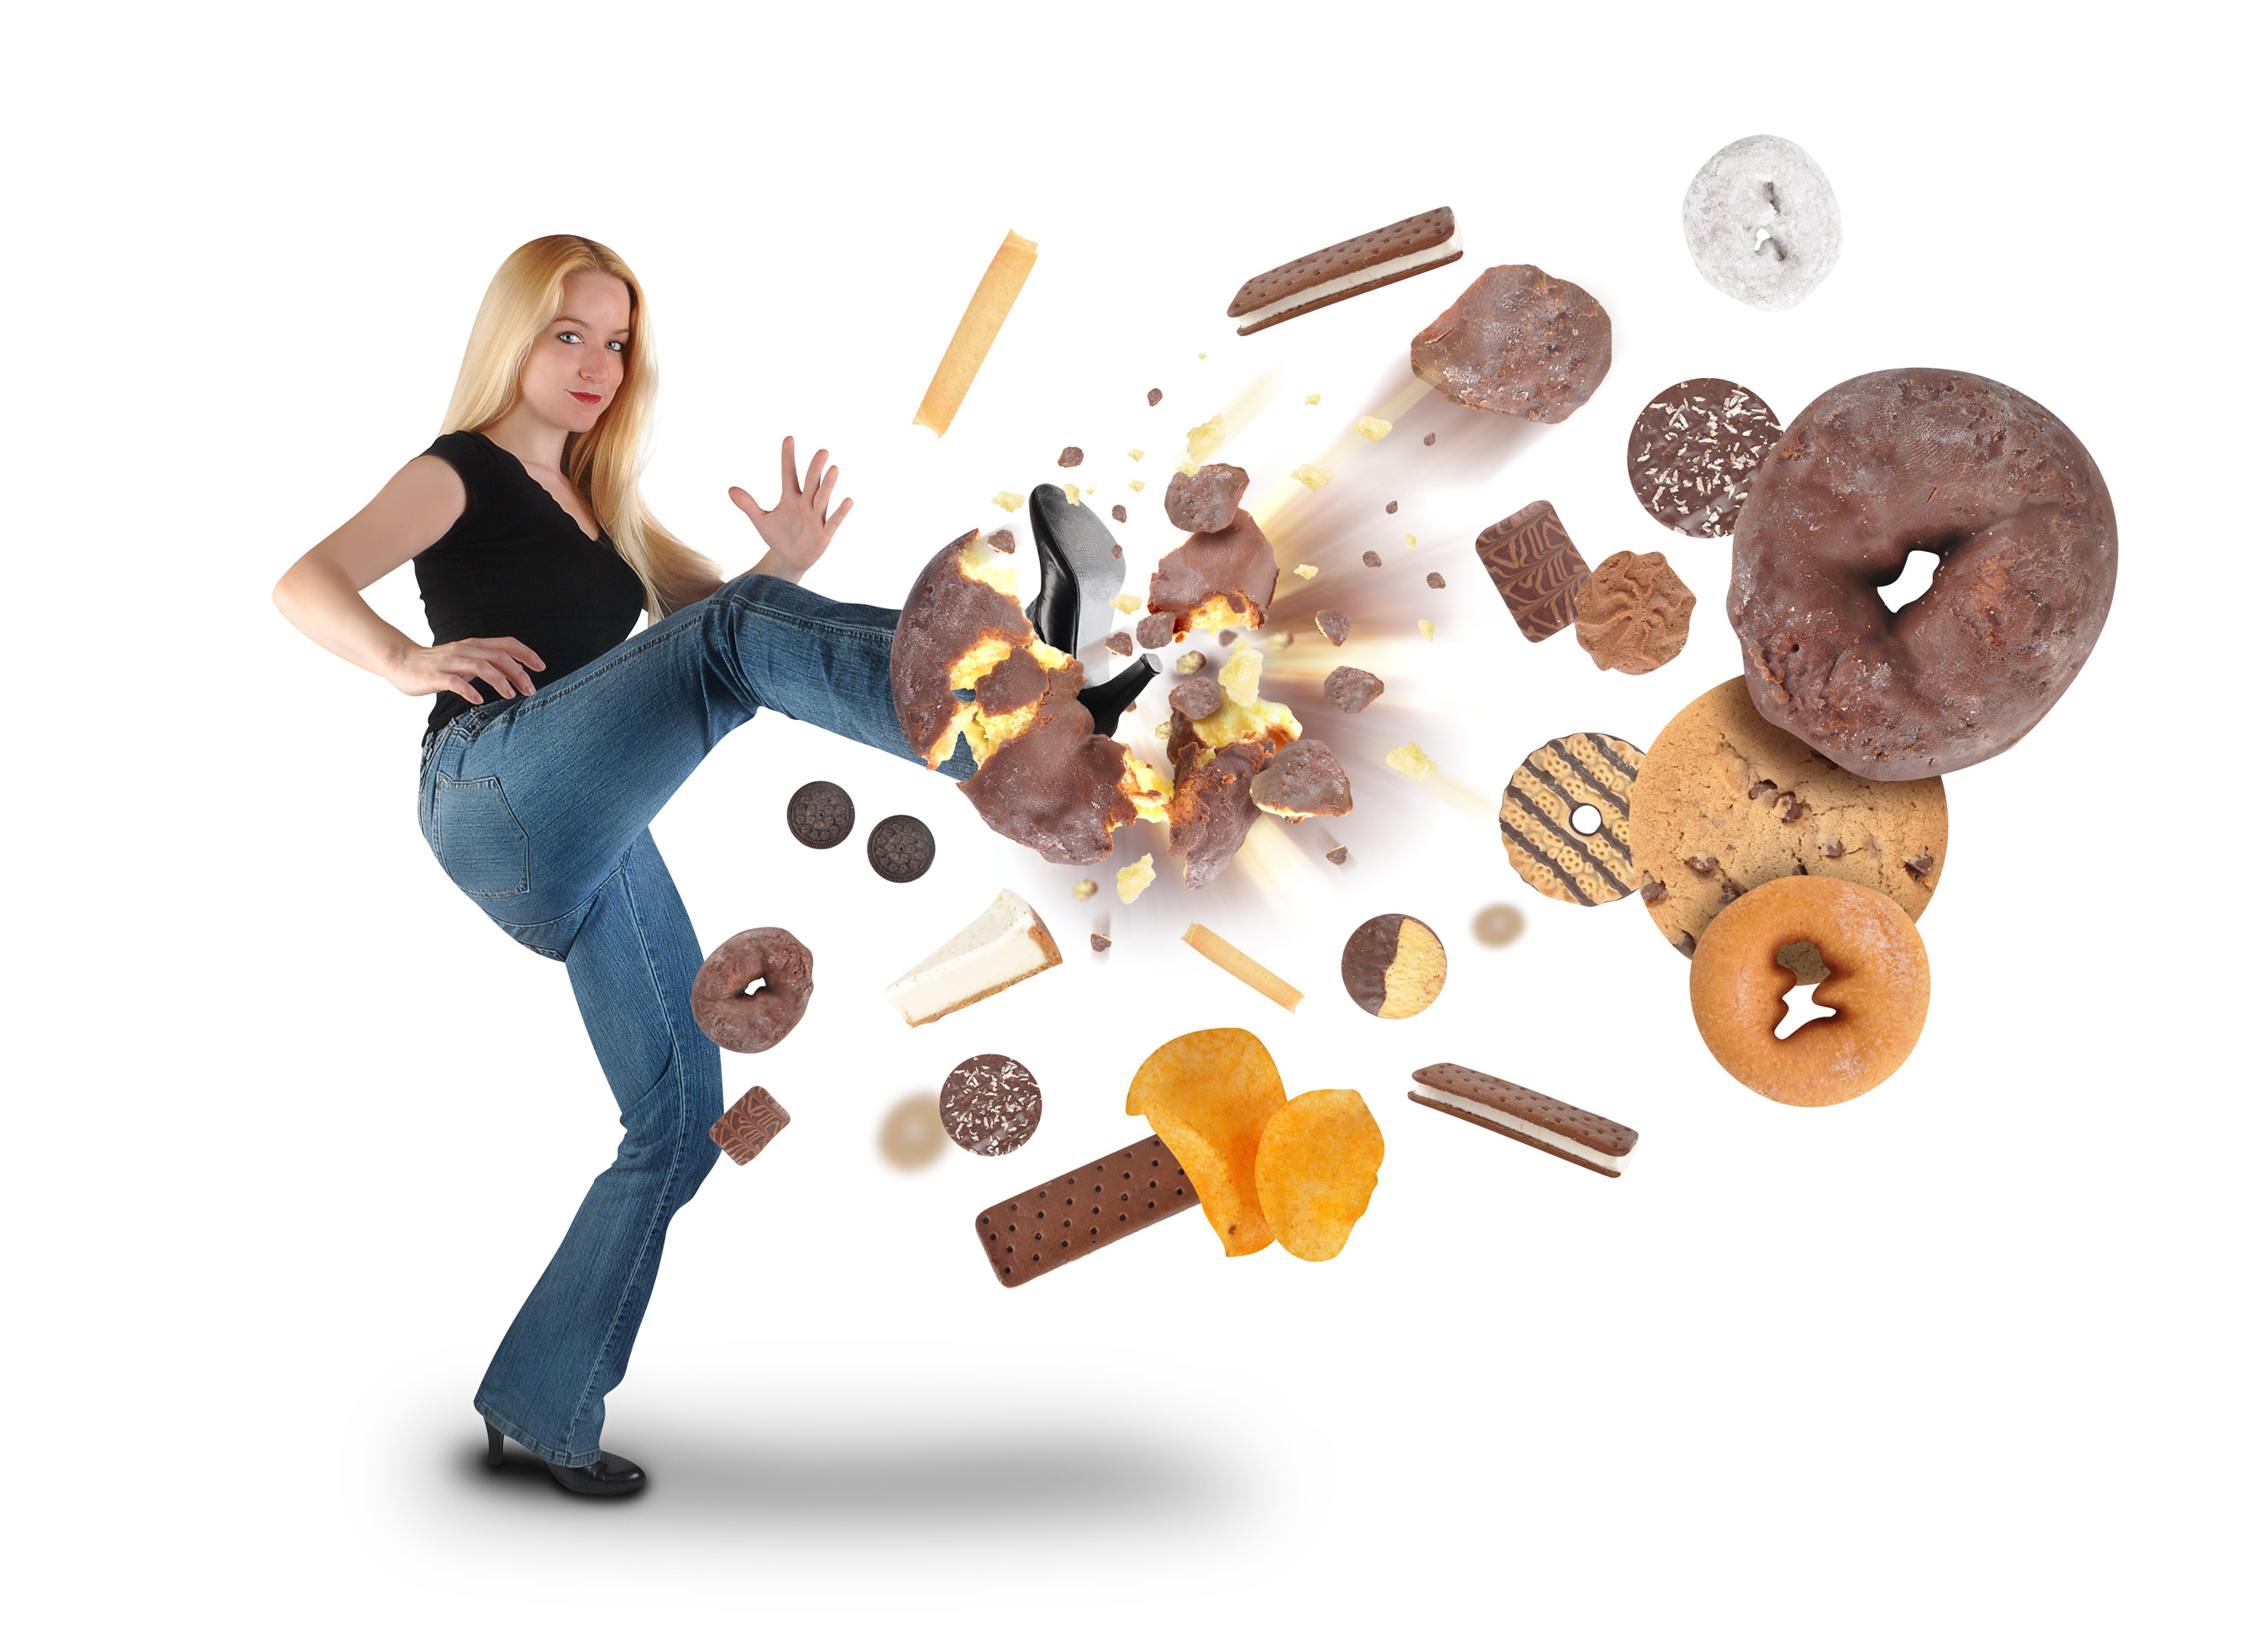 Diet Woman Kicking Donut Snacks on White